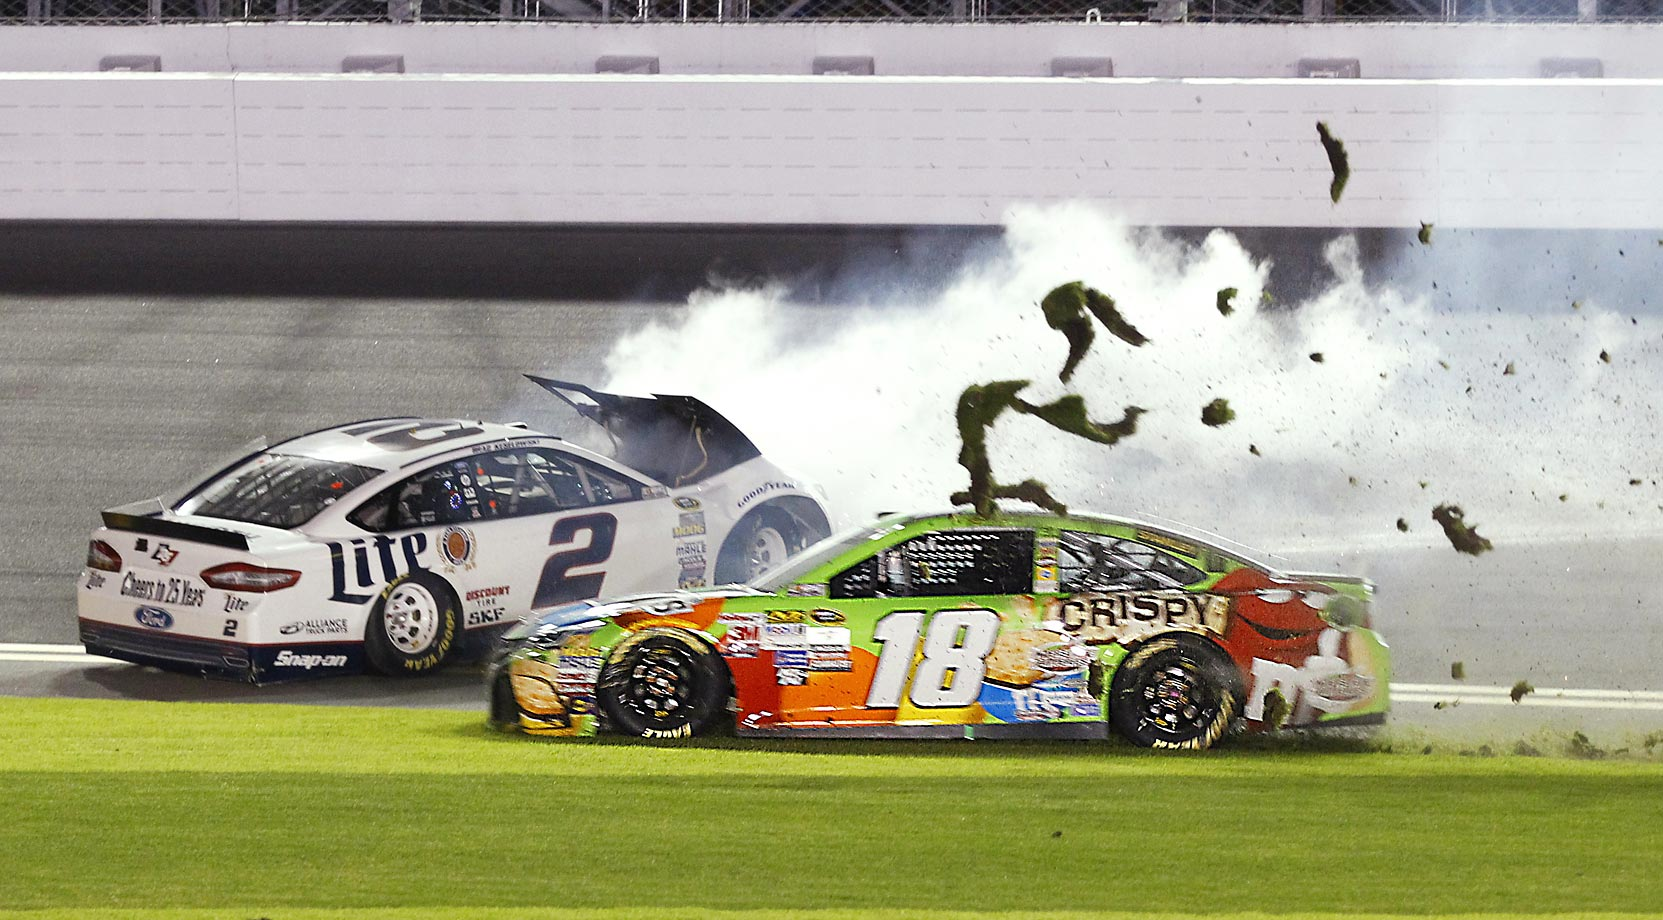 Brad Keselowski (2) slides backward after hitting the wall in the front stretch and Kyle Busch (18) drives through the infield grass to avoid him during the NASCAR Sprint Unlimited race at Daytona International Speedway.